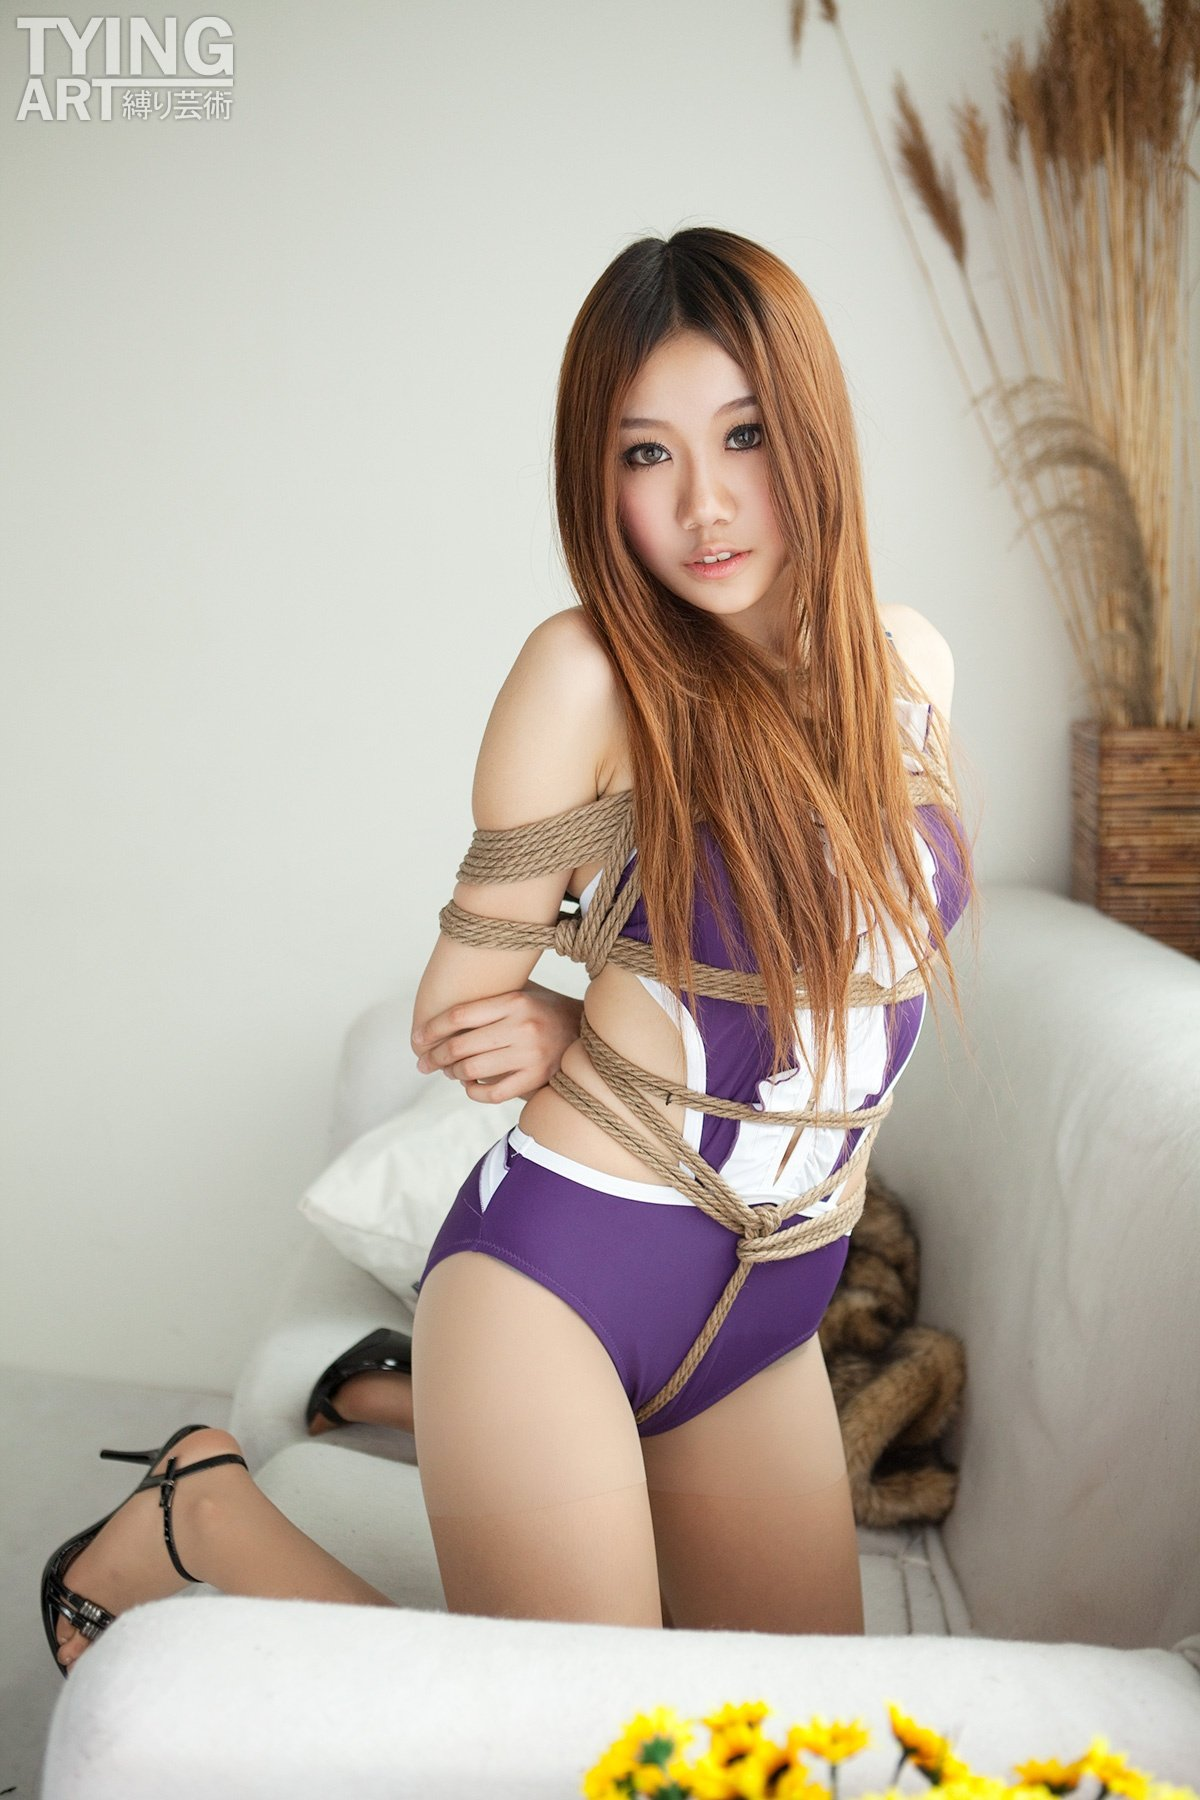 woman Otngagged bondage asian